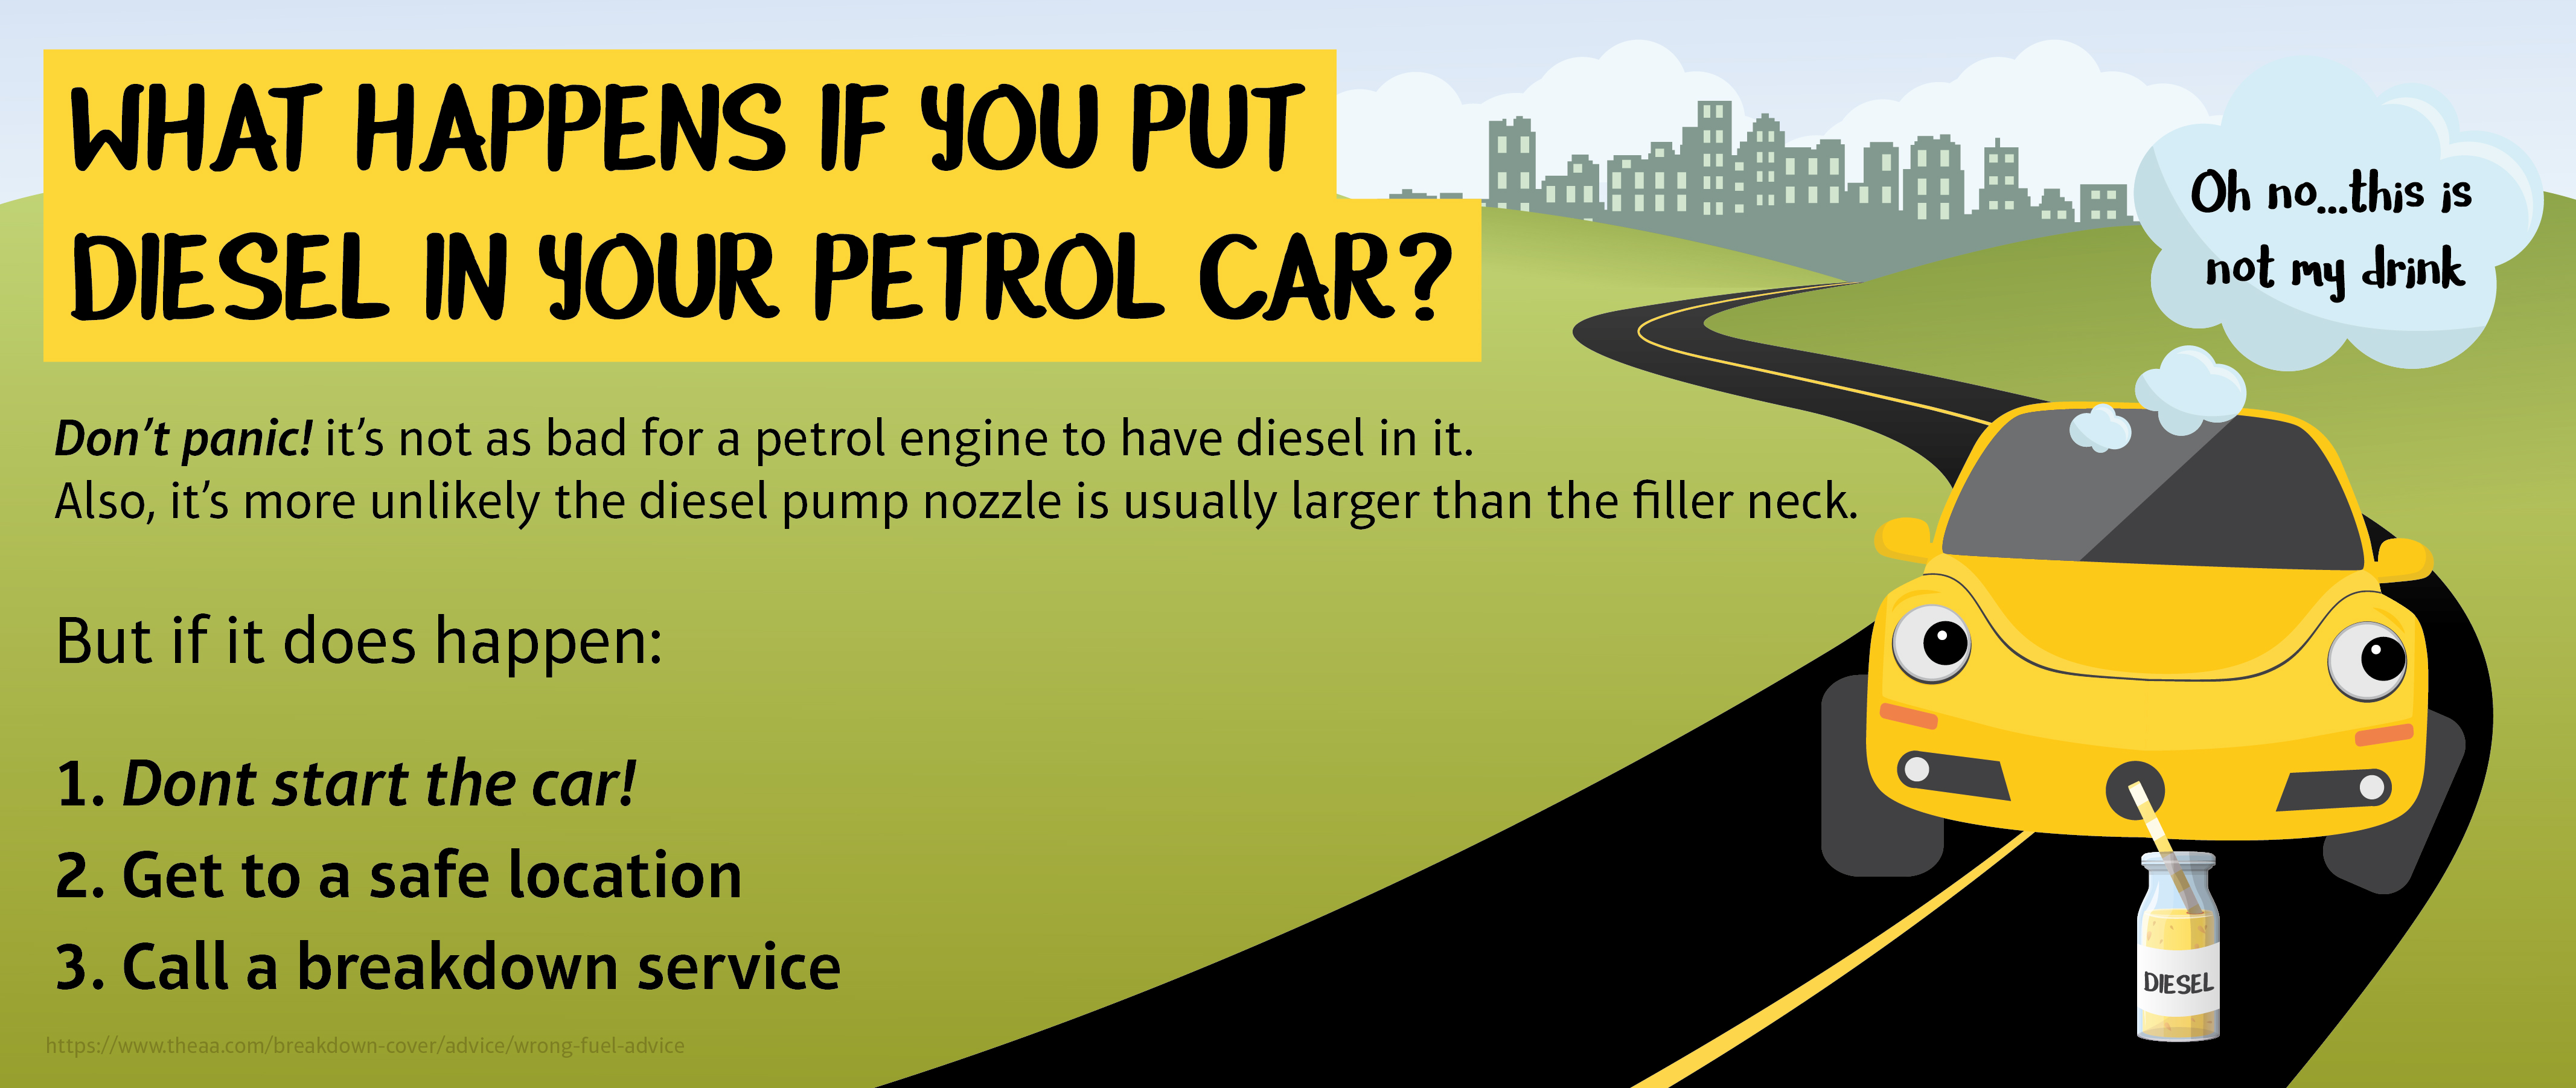 What happens when you put diesel in your petrol car?